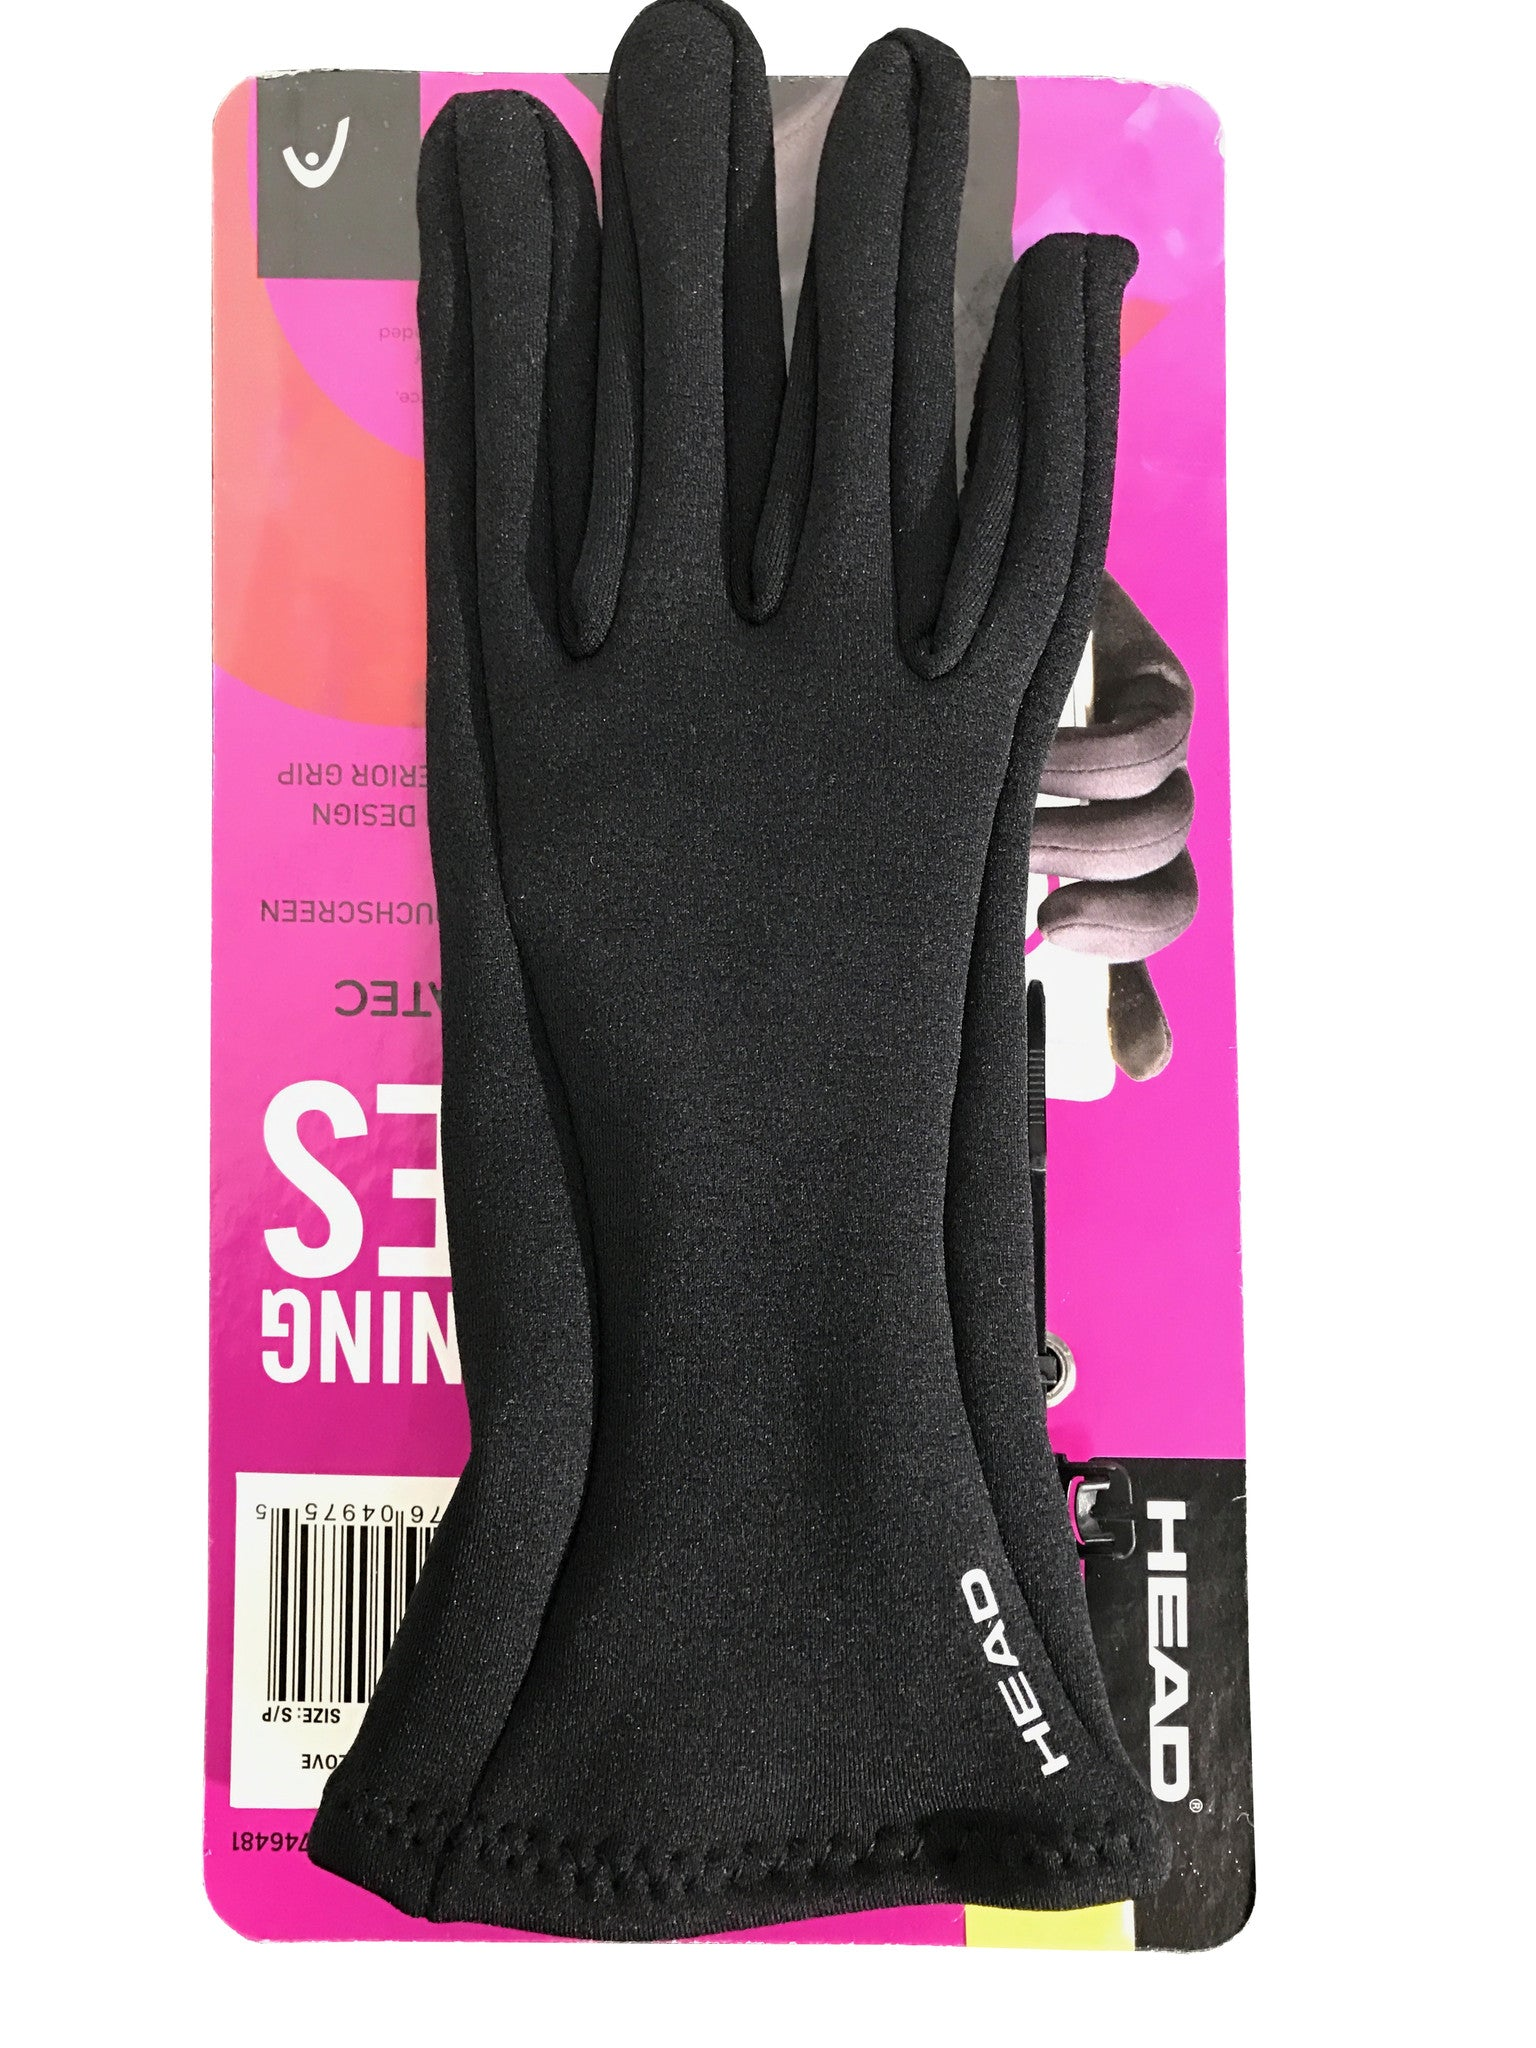 Head Women's Digital Running Gloves Sensatec Touchscreen Compatible M or S sizes [S]